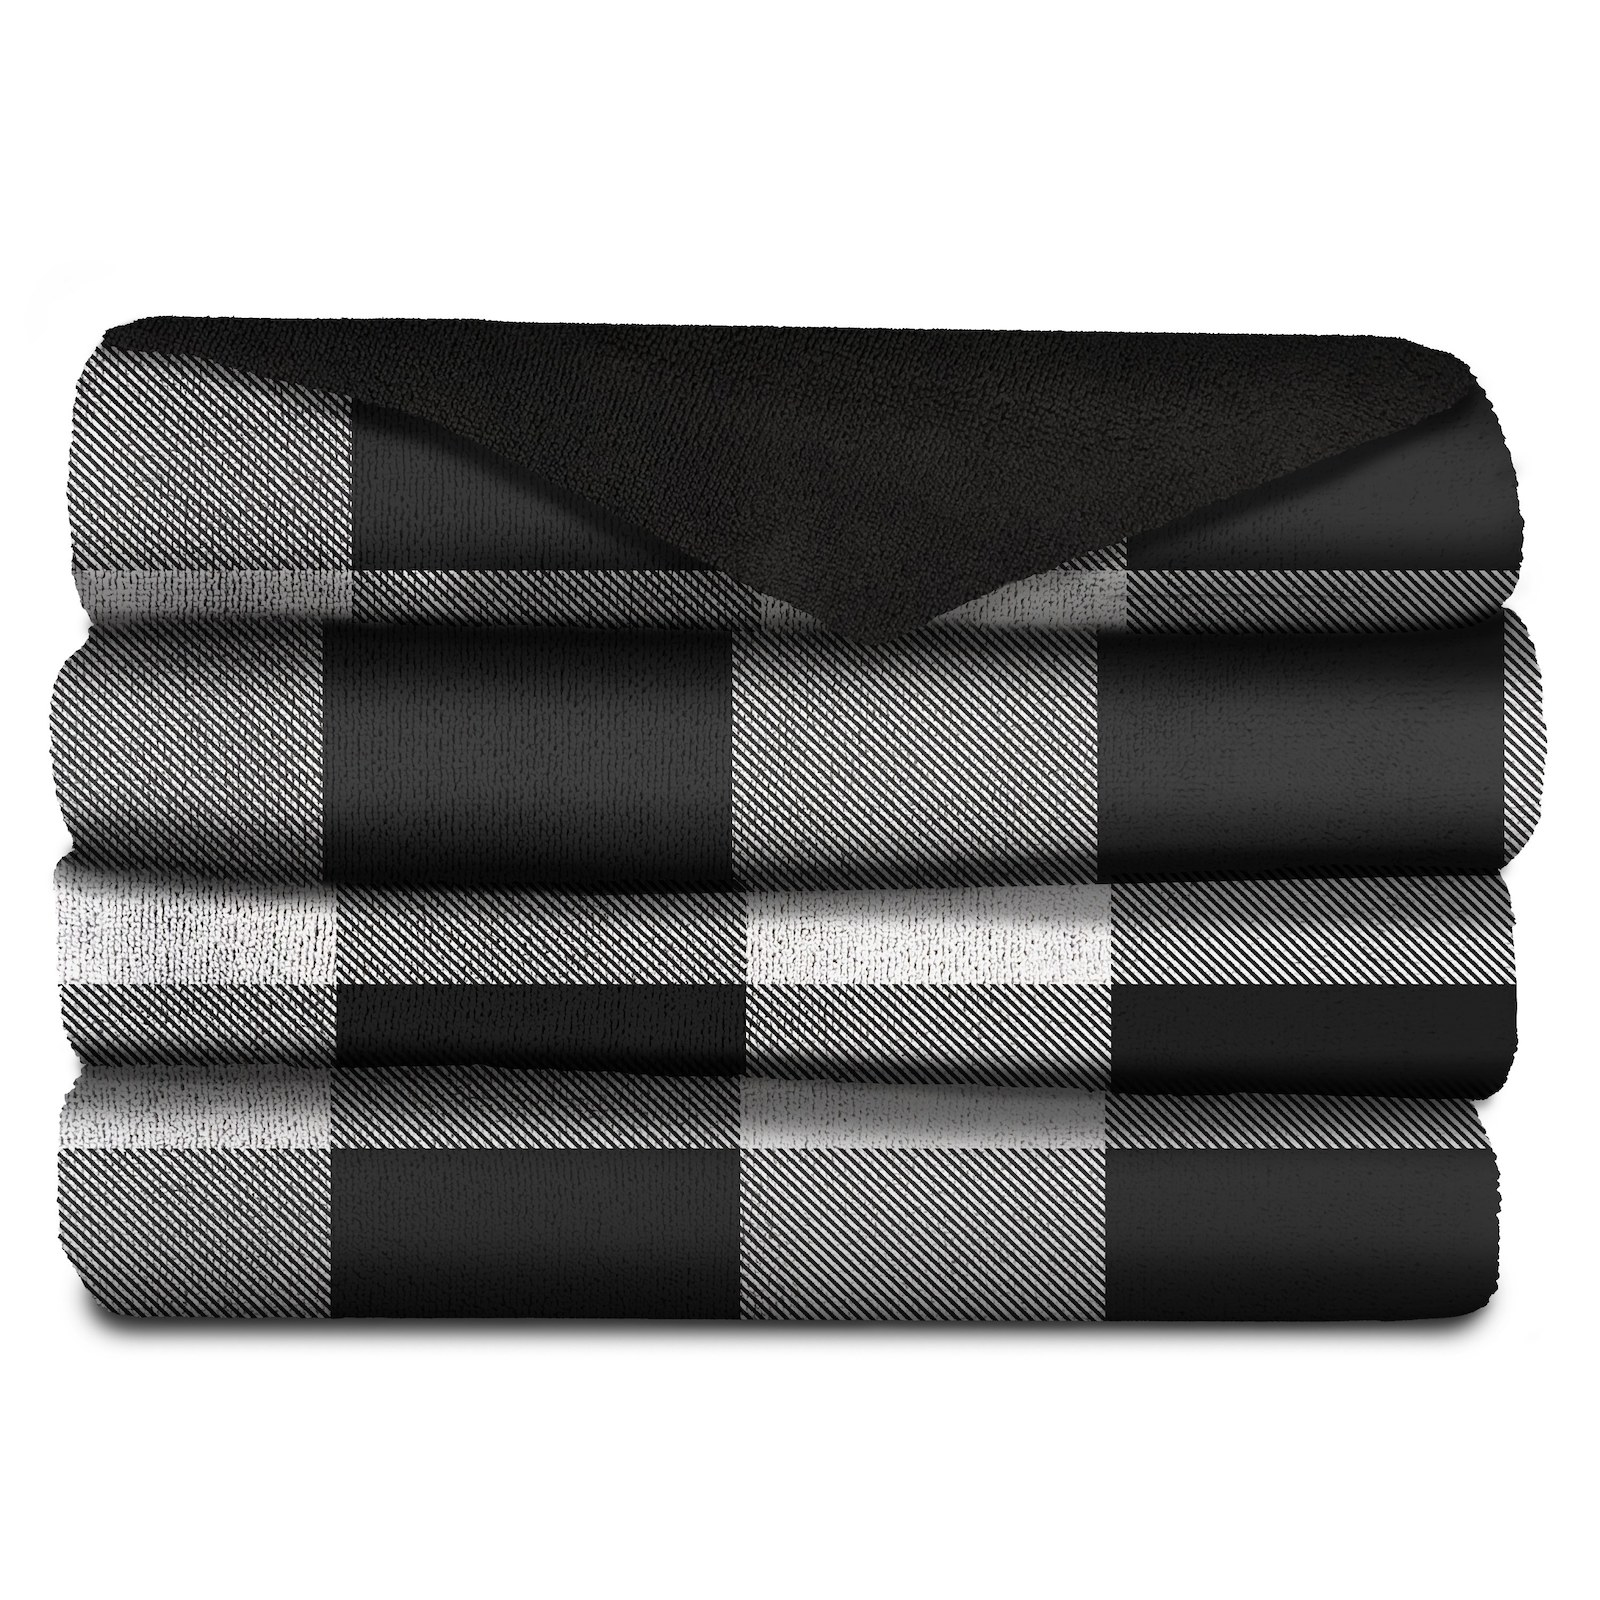 The black and white throw neatly folded